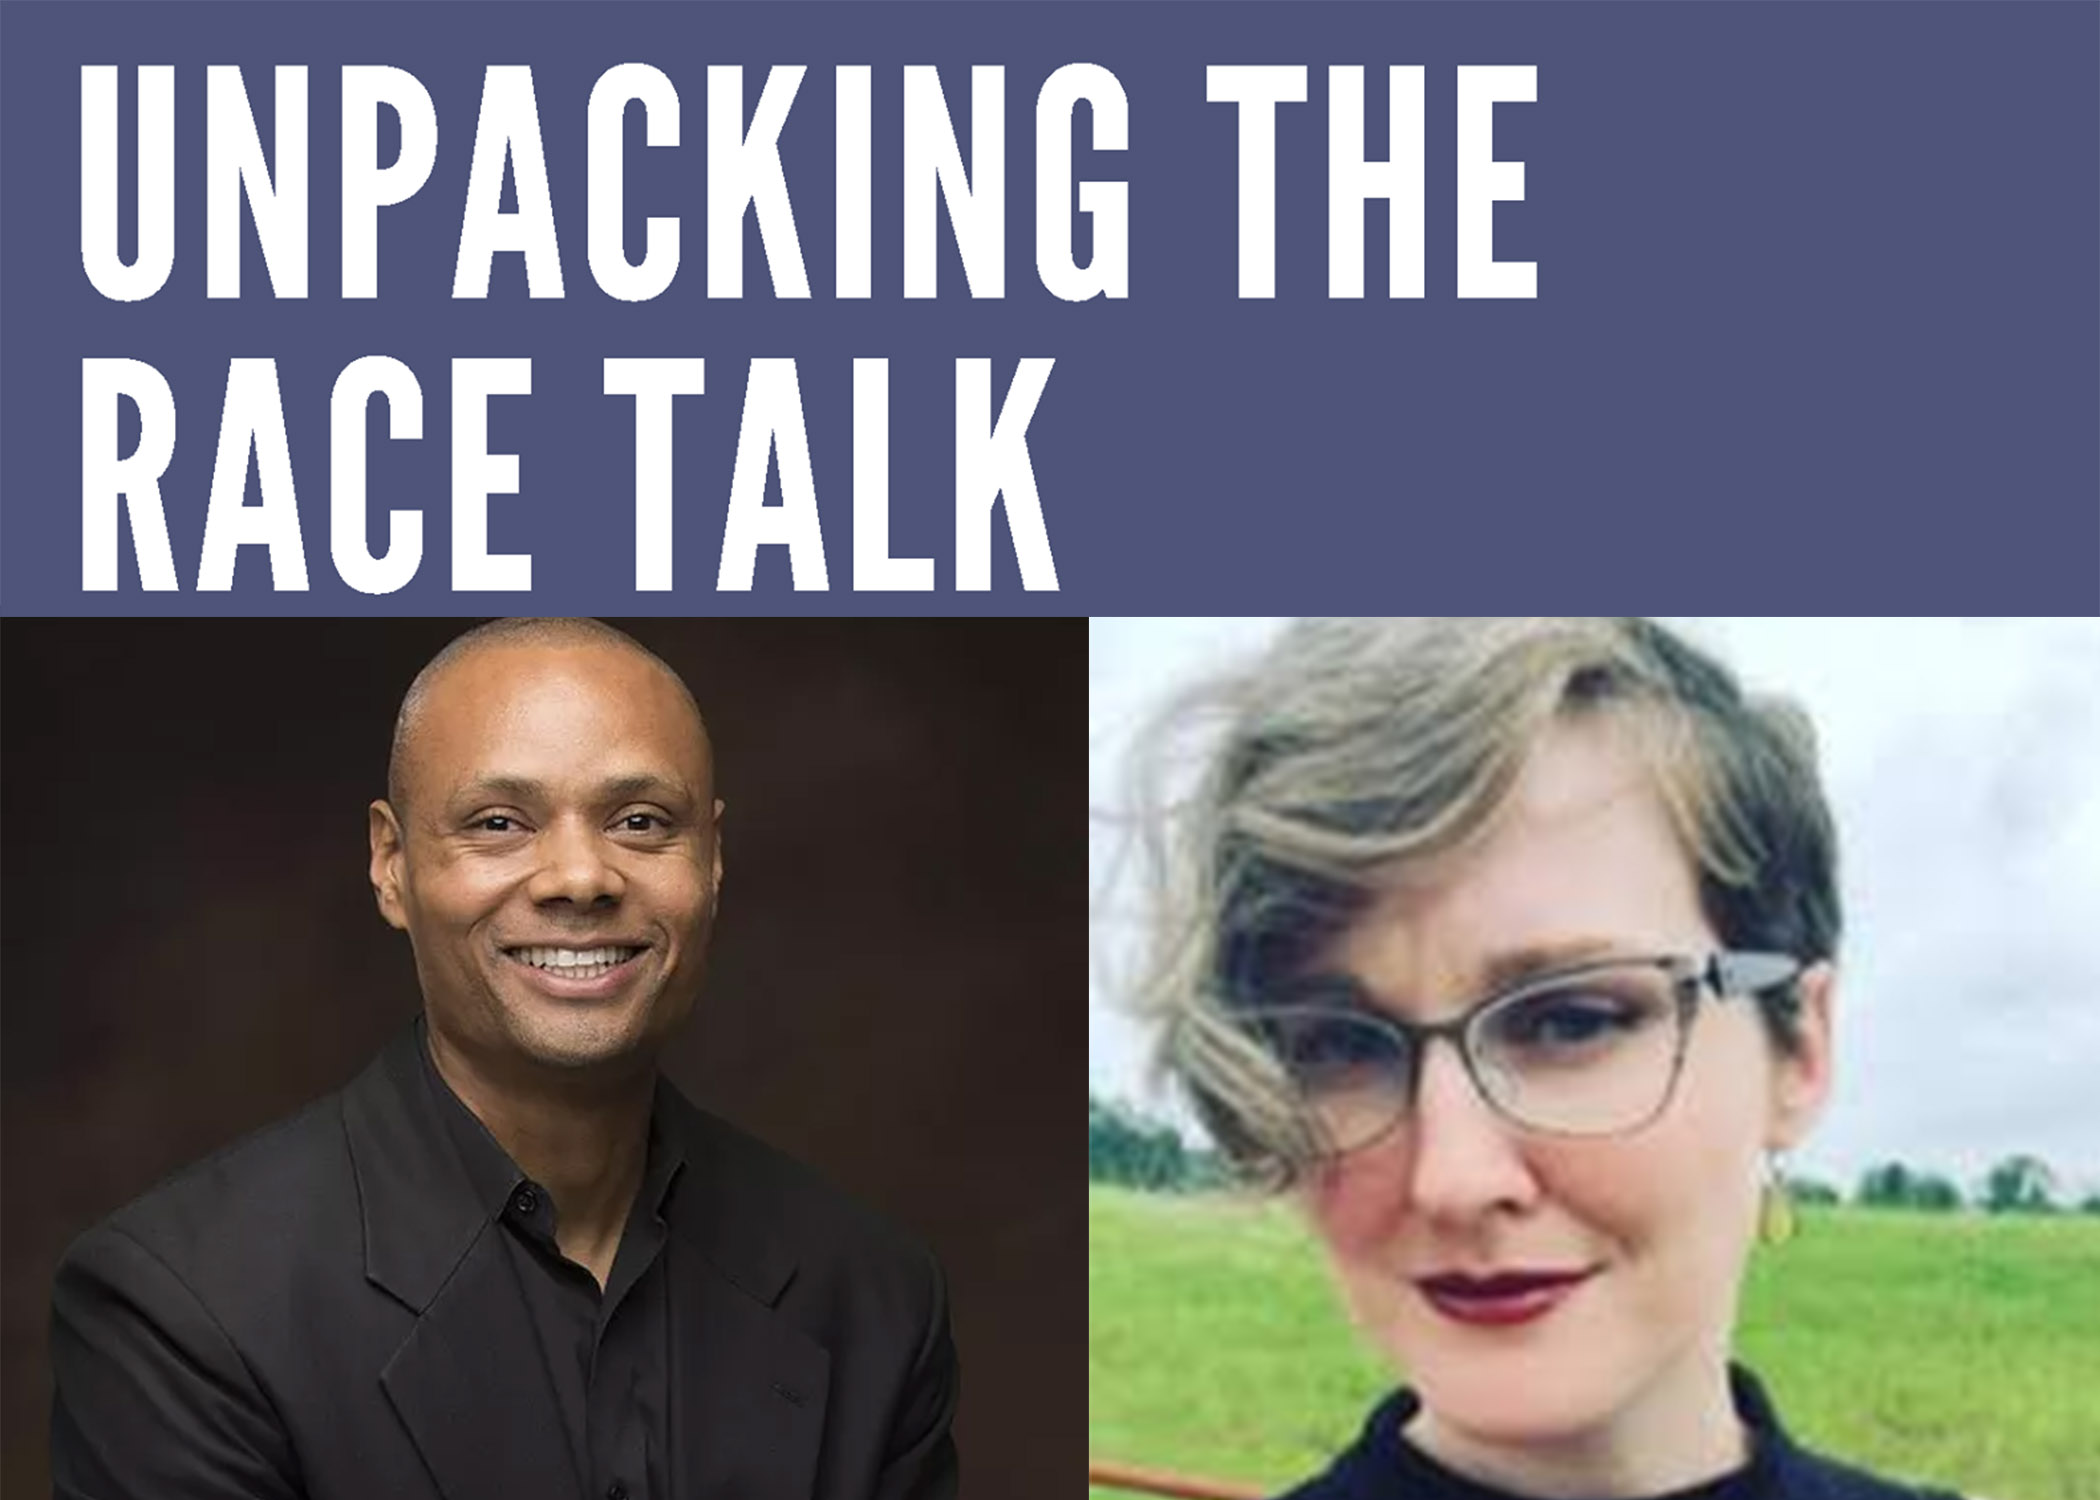 Unpacking the Race Talk with headshots of speakers